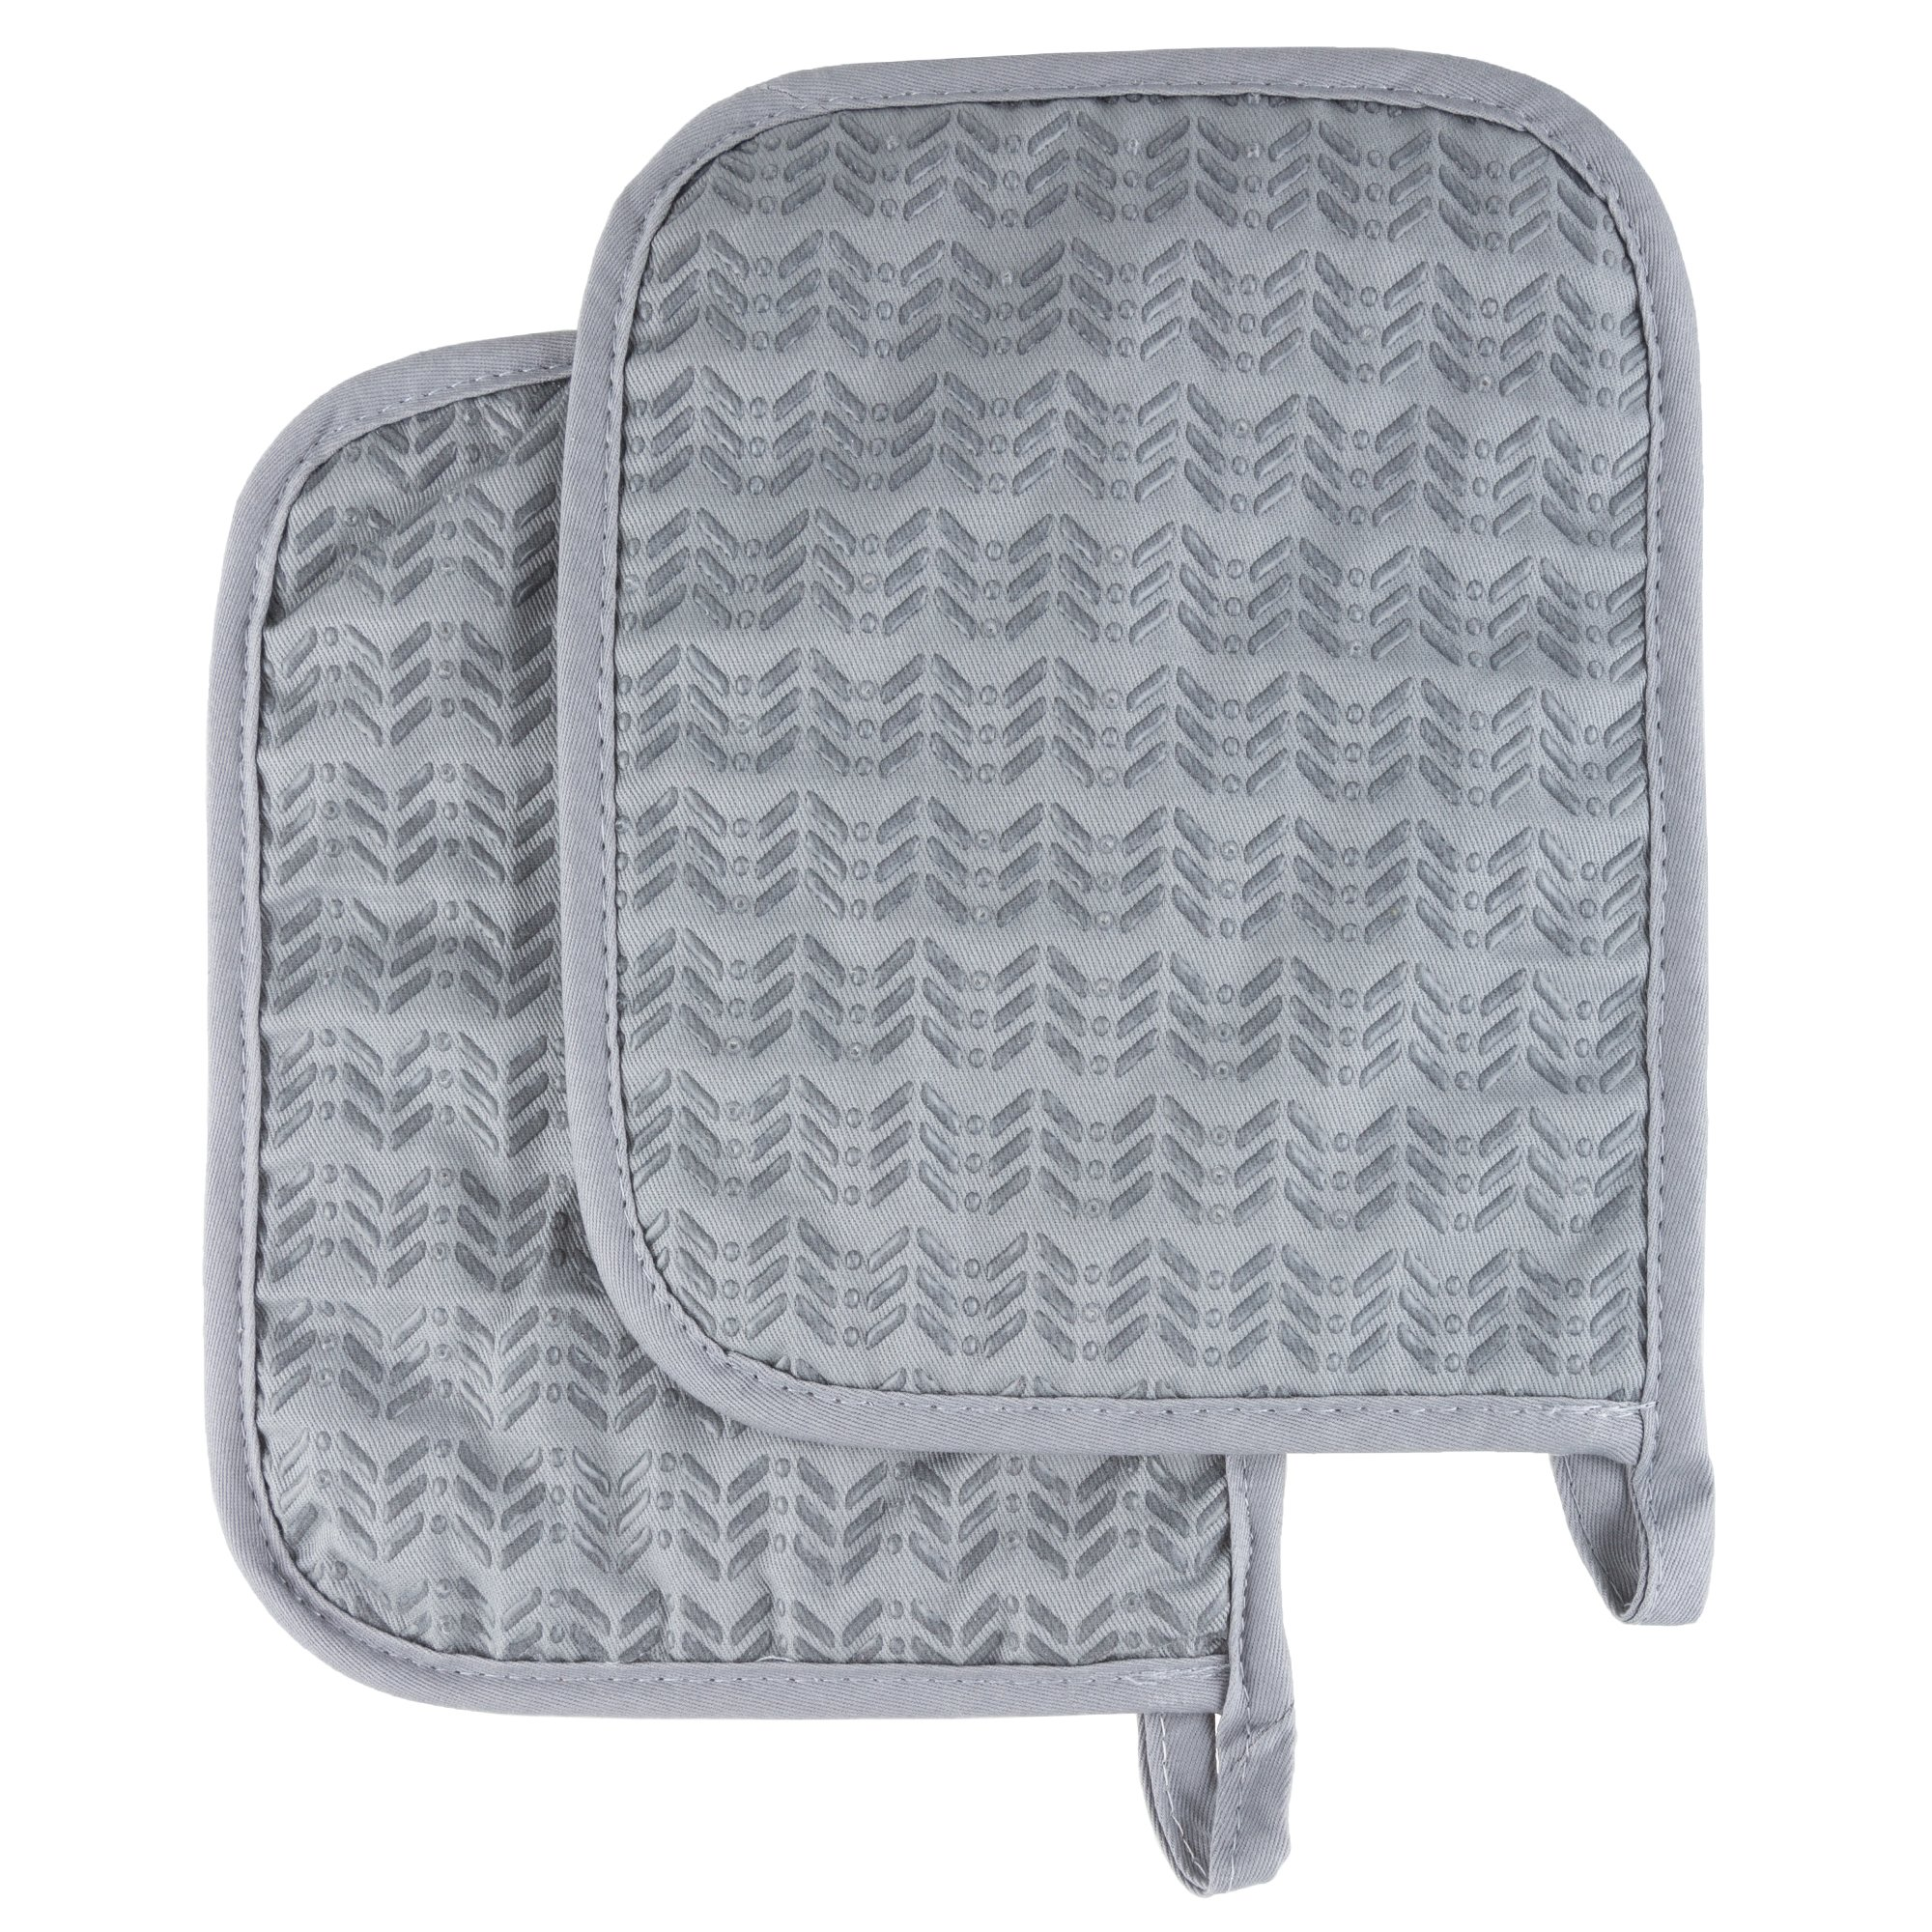 Pot Holder Set With Silicone Grip, Quilted And Heat Resistant (Set of 2) By Lavish Home (Silver)